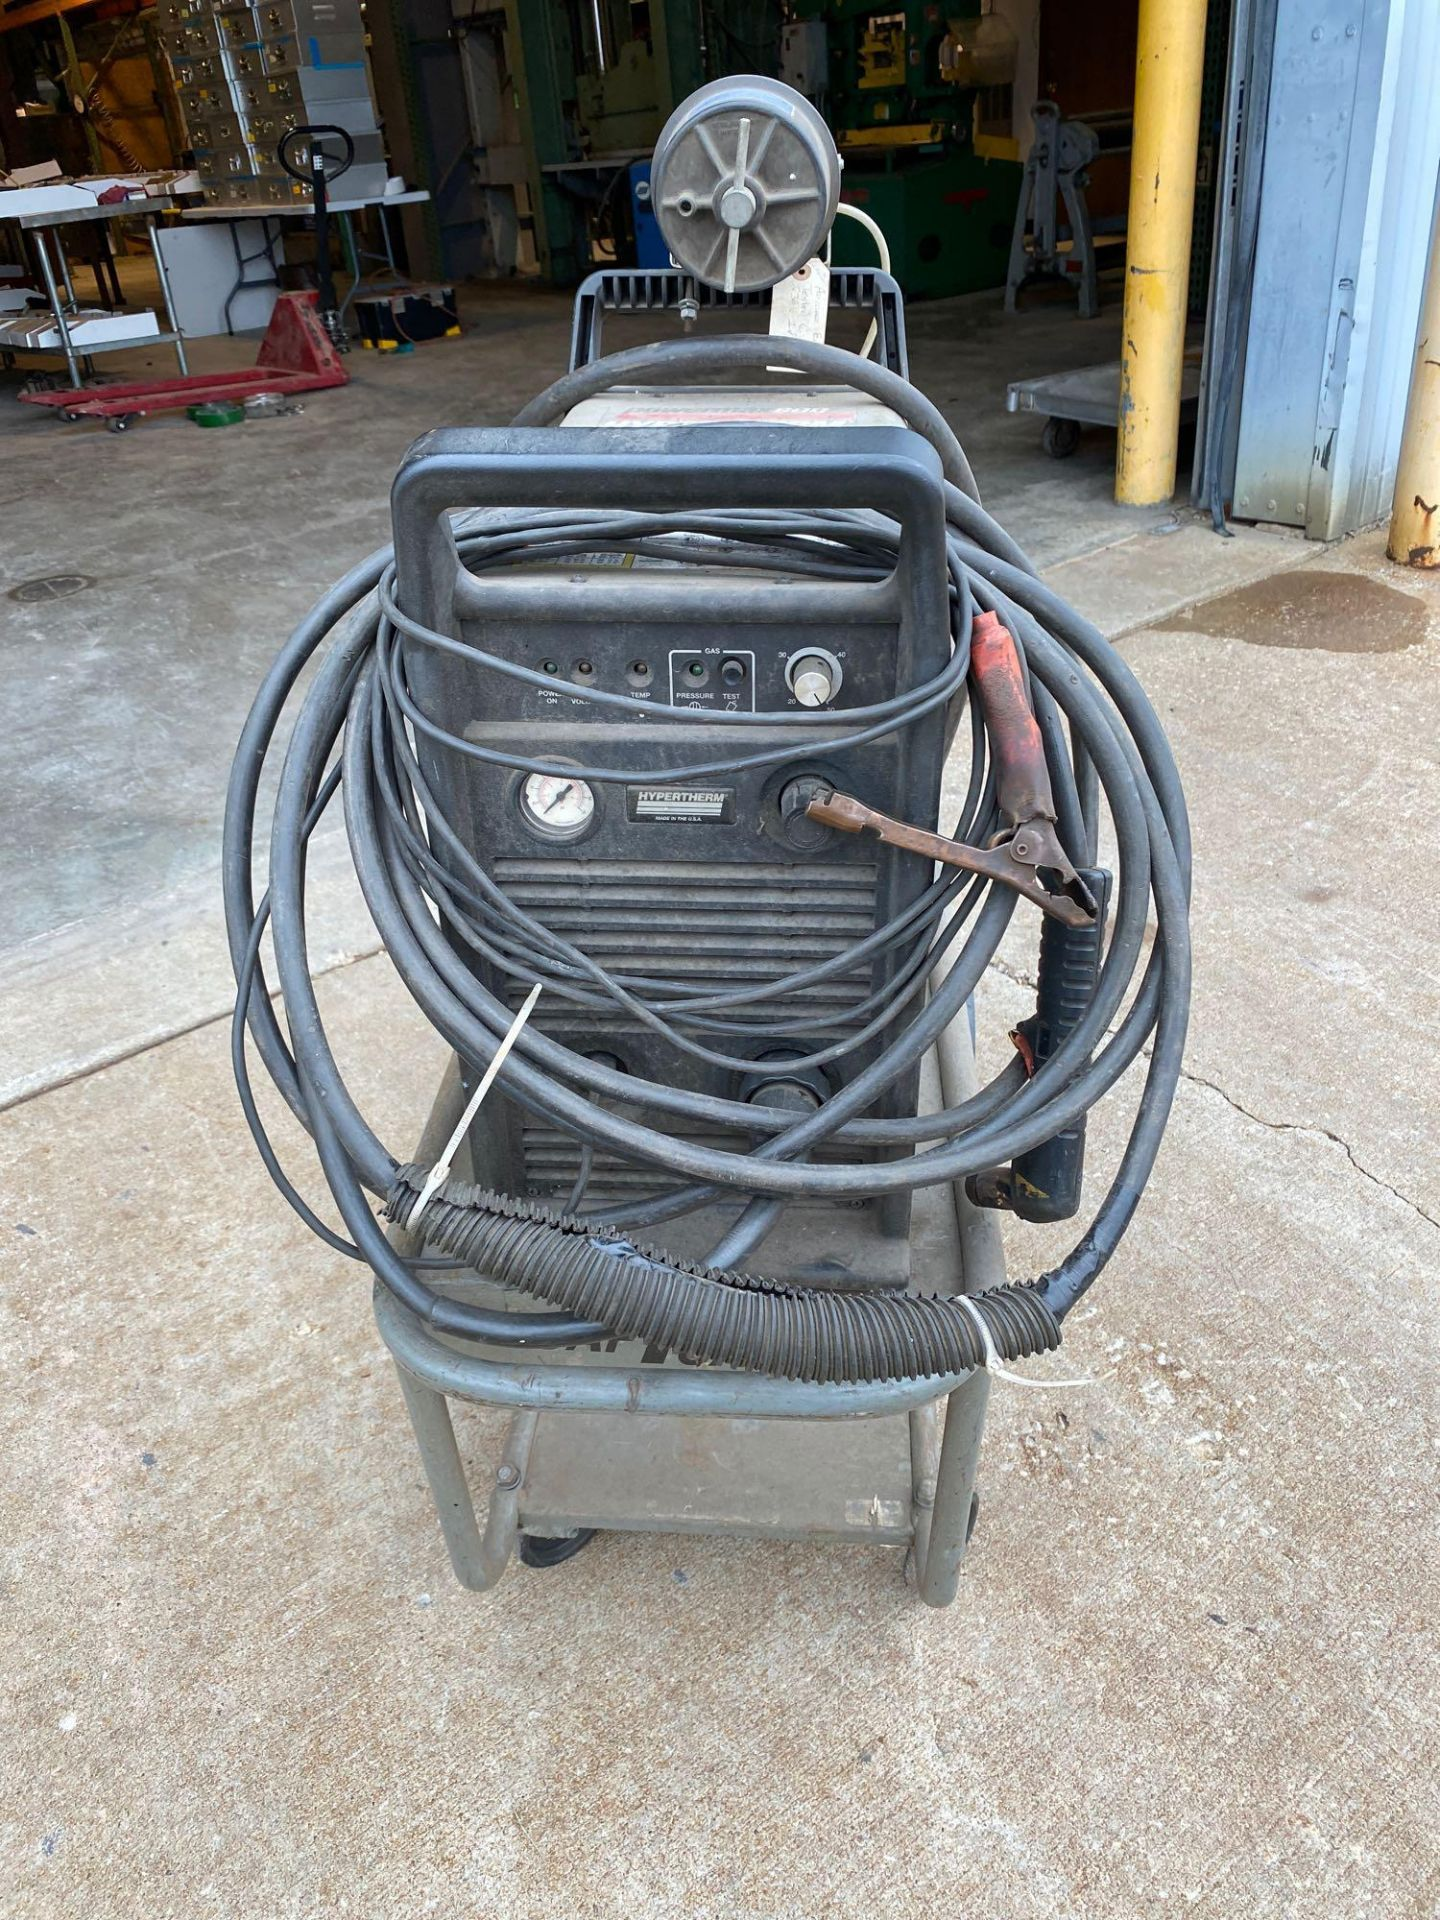 Power Max 800 Hypertherm Plasma Cutter - Image 3 of 8